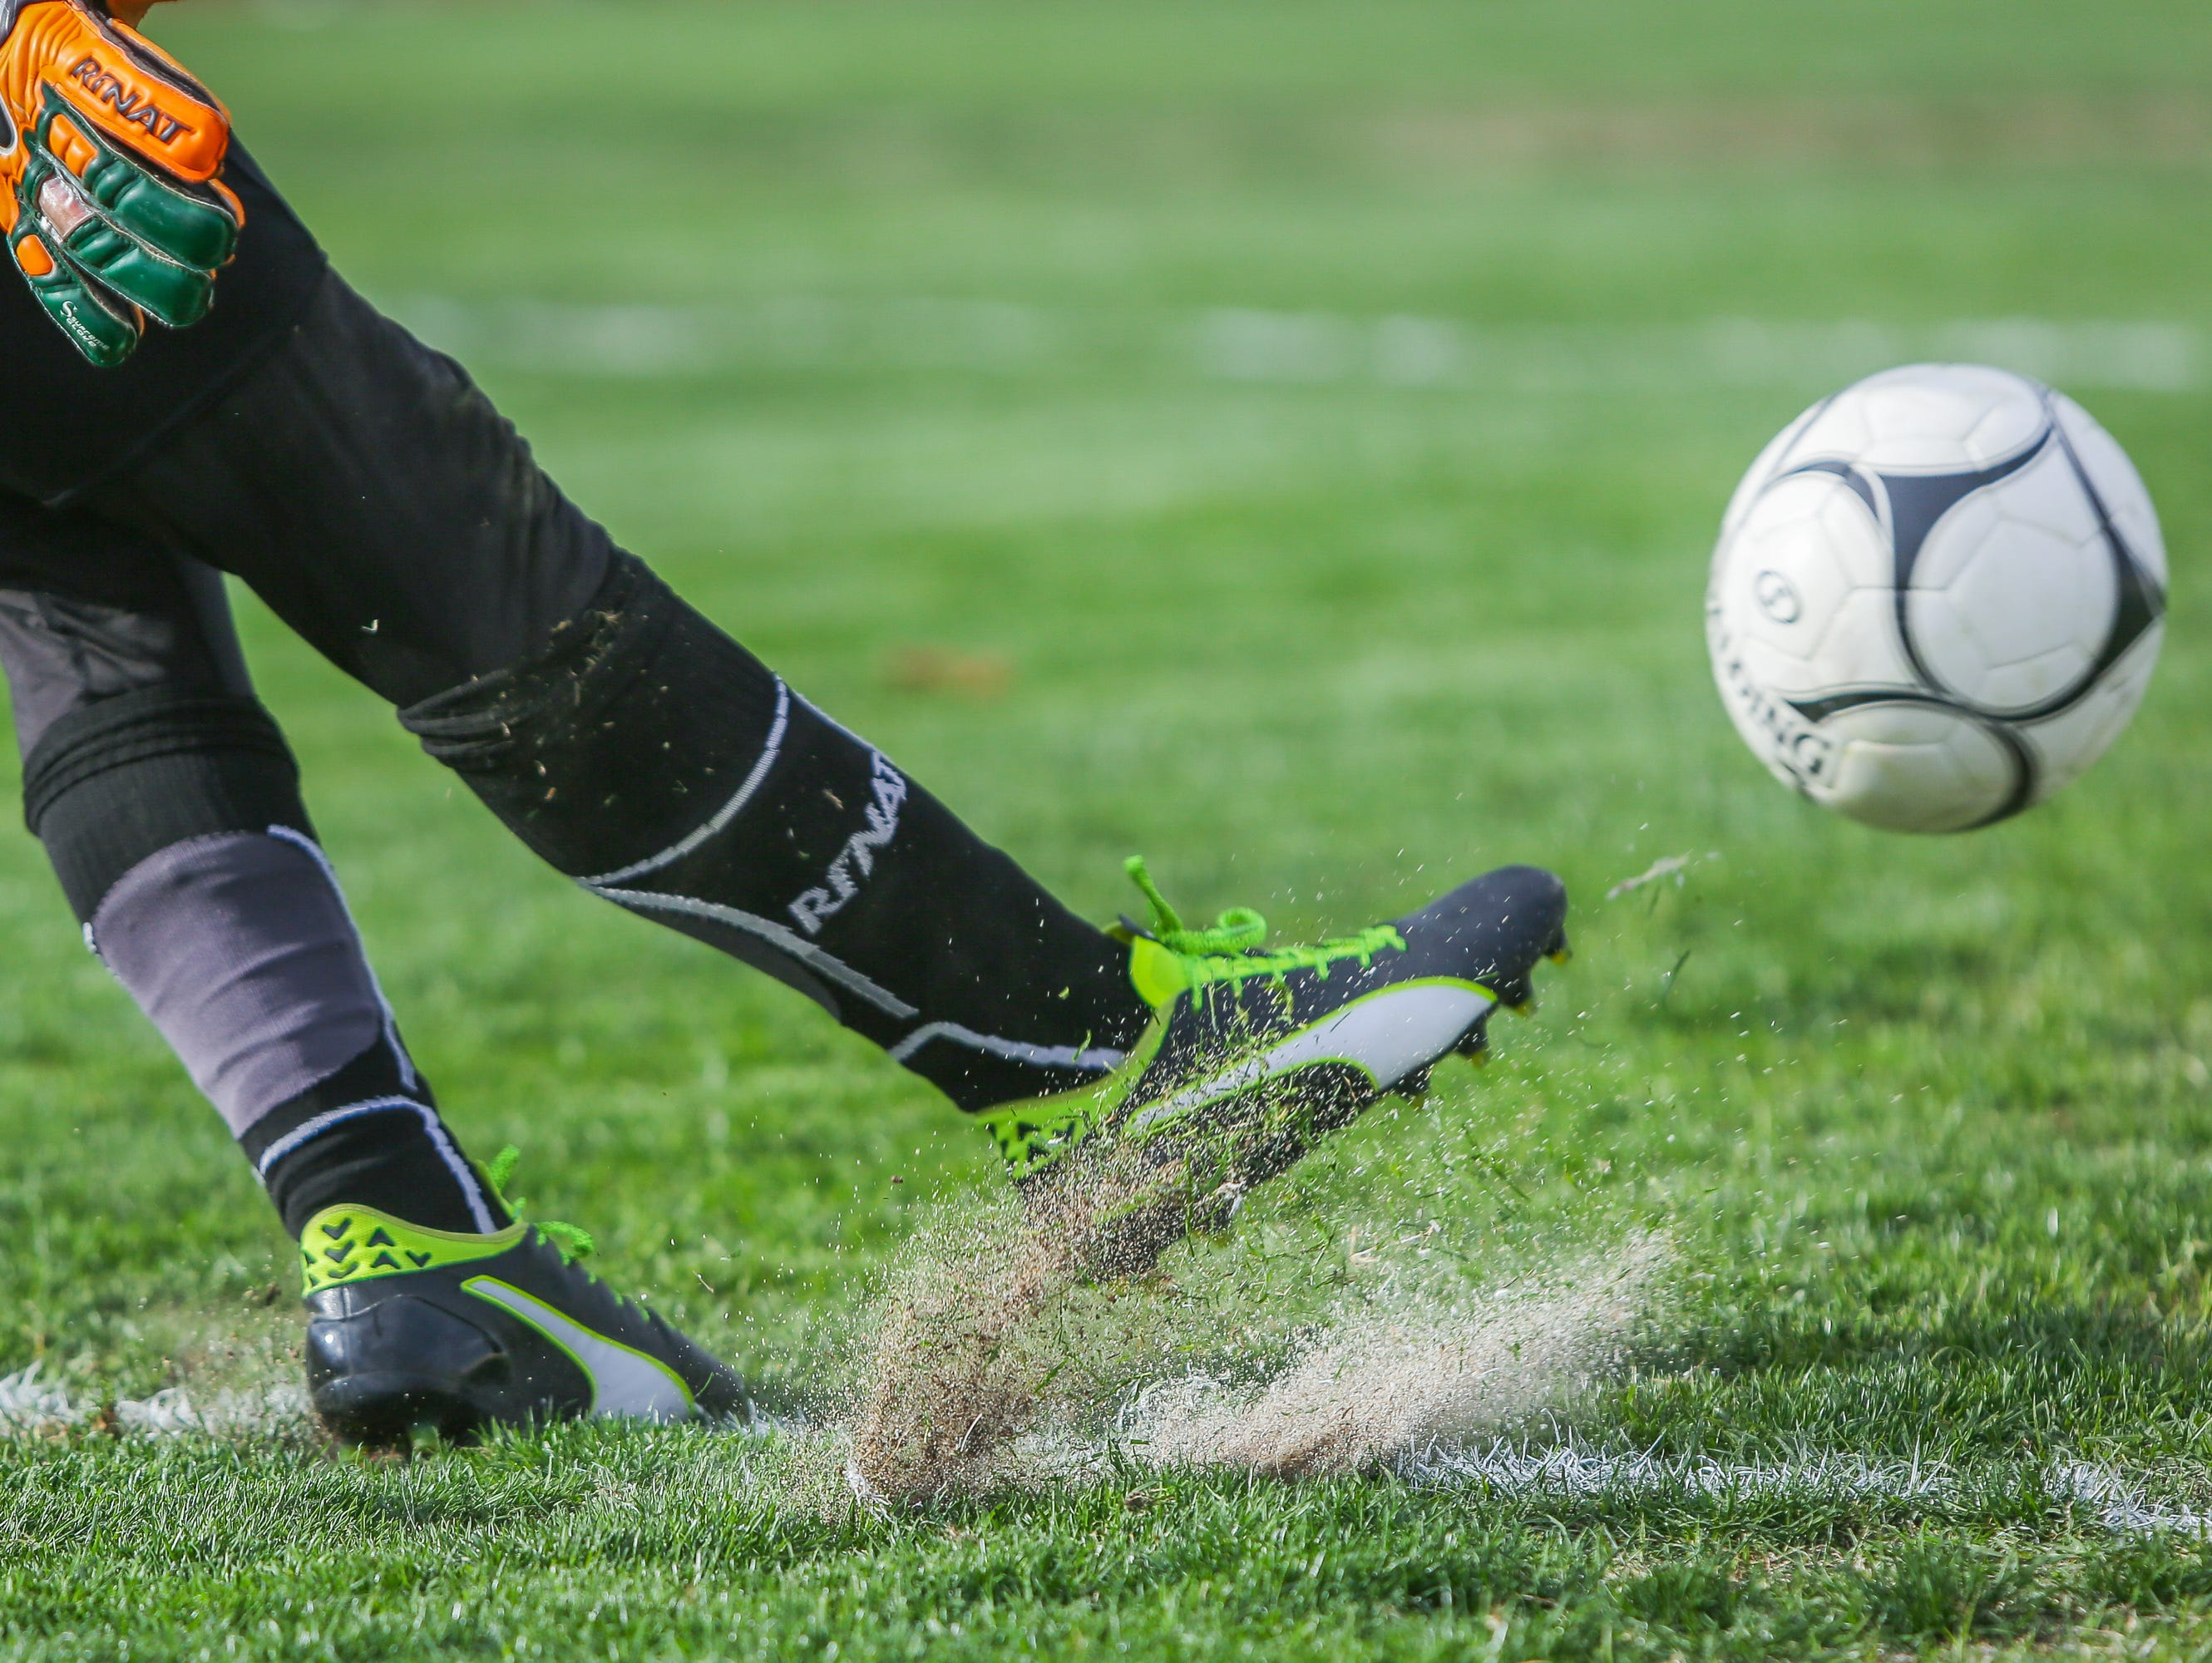 It's playoff time for high school soccer.